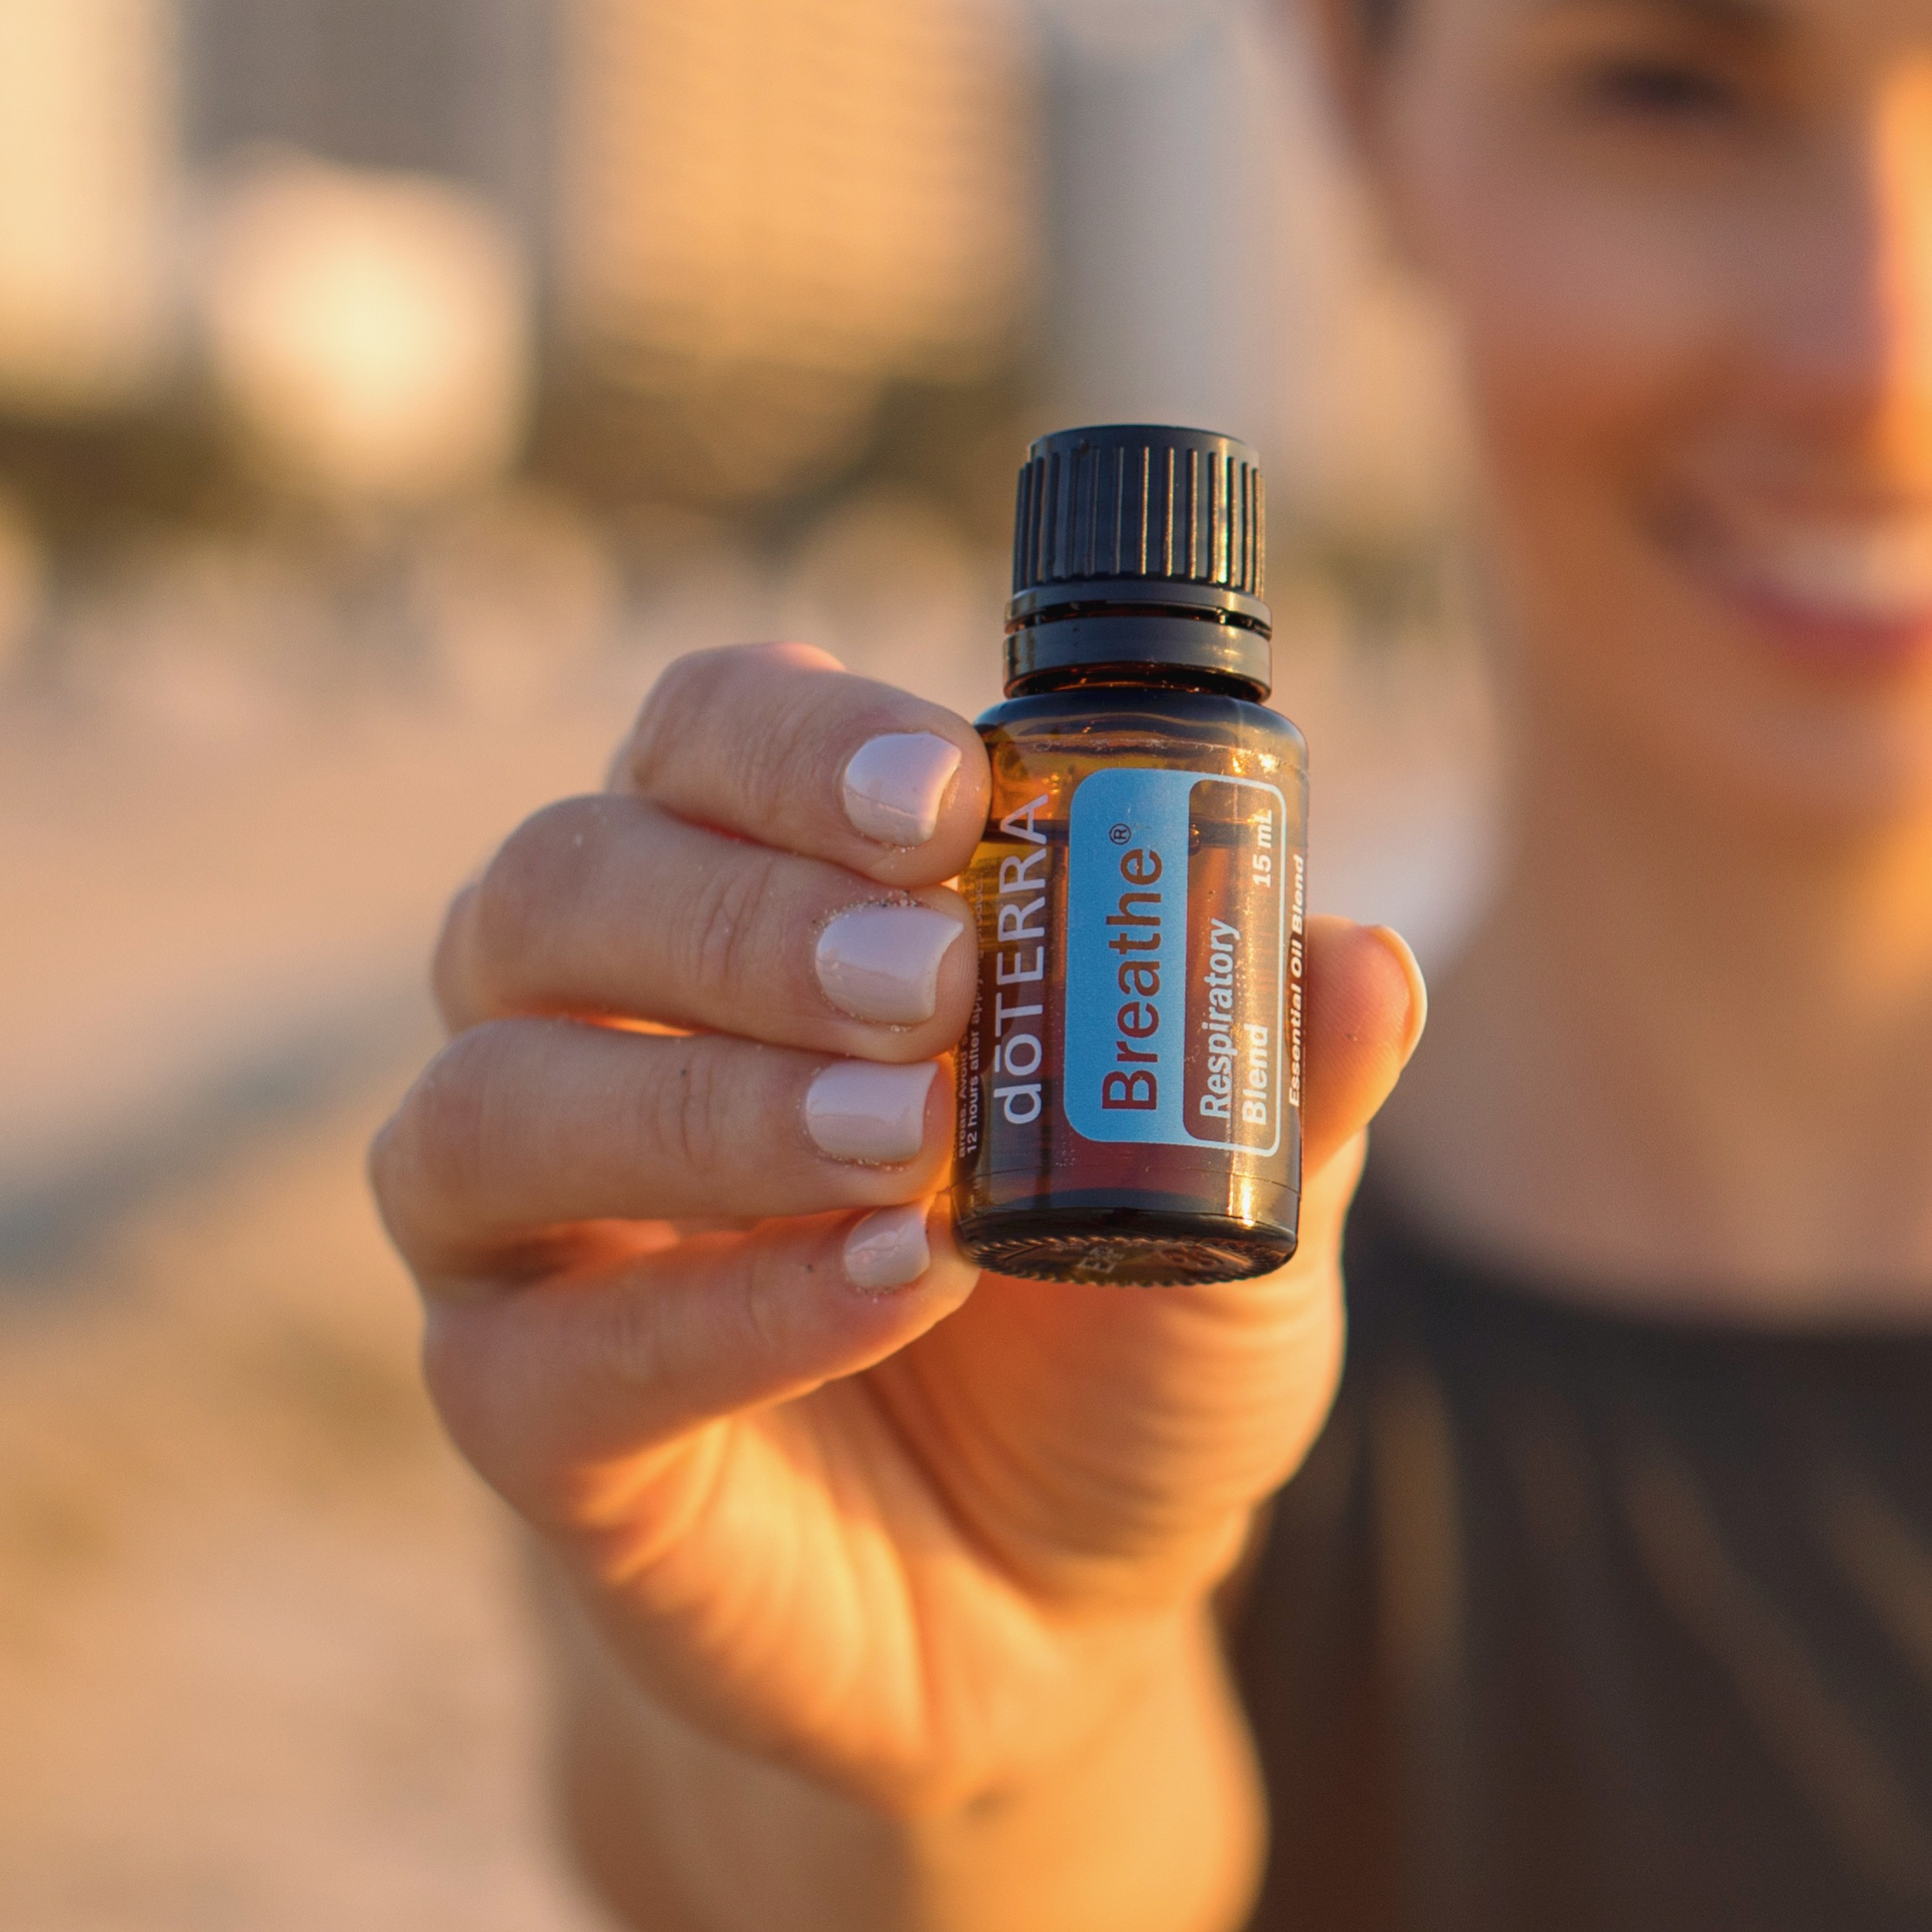 yoga asana is only some of the practice - daily rituals of Living the yoga lifestyle with trusted Essential Oils will change your life.guaranteed.